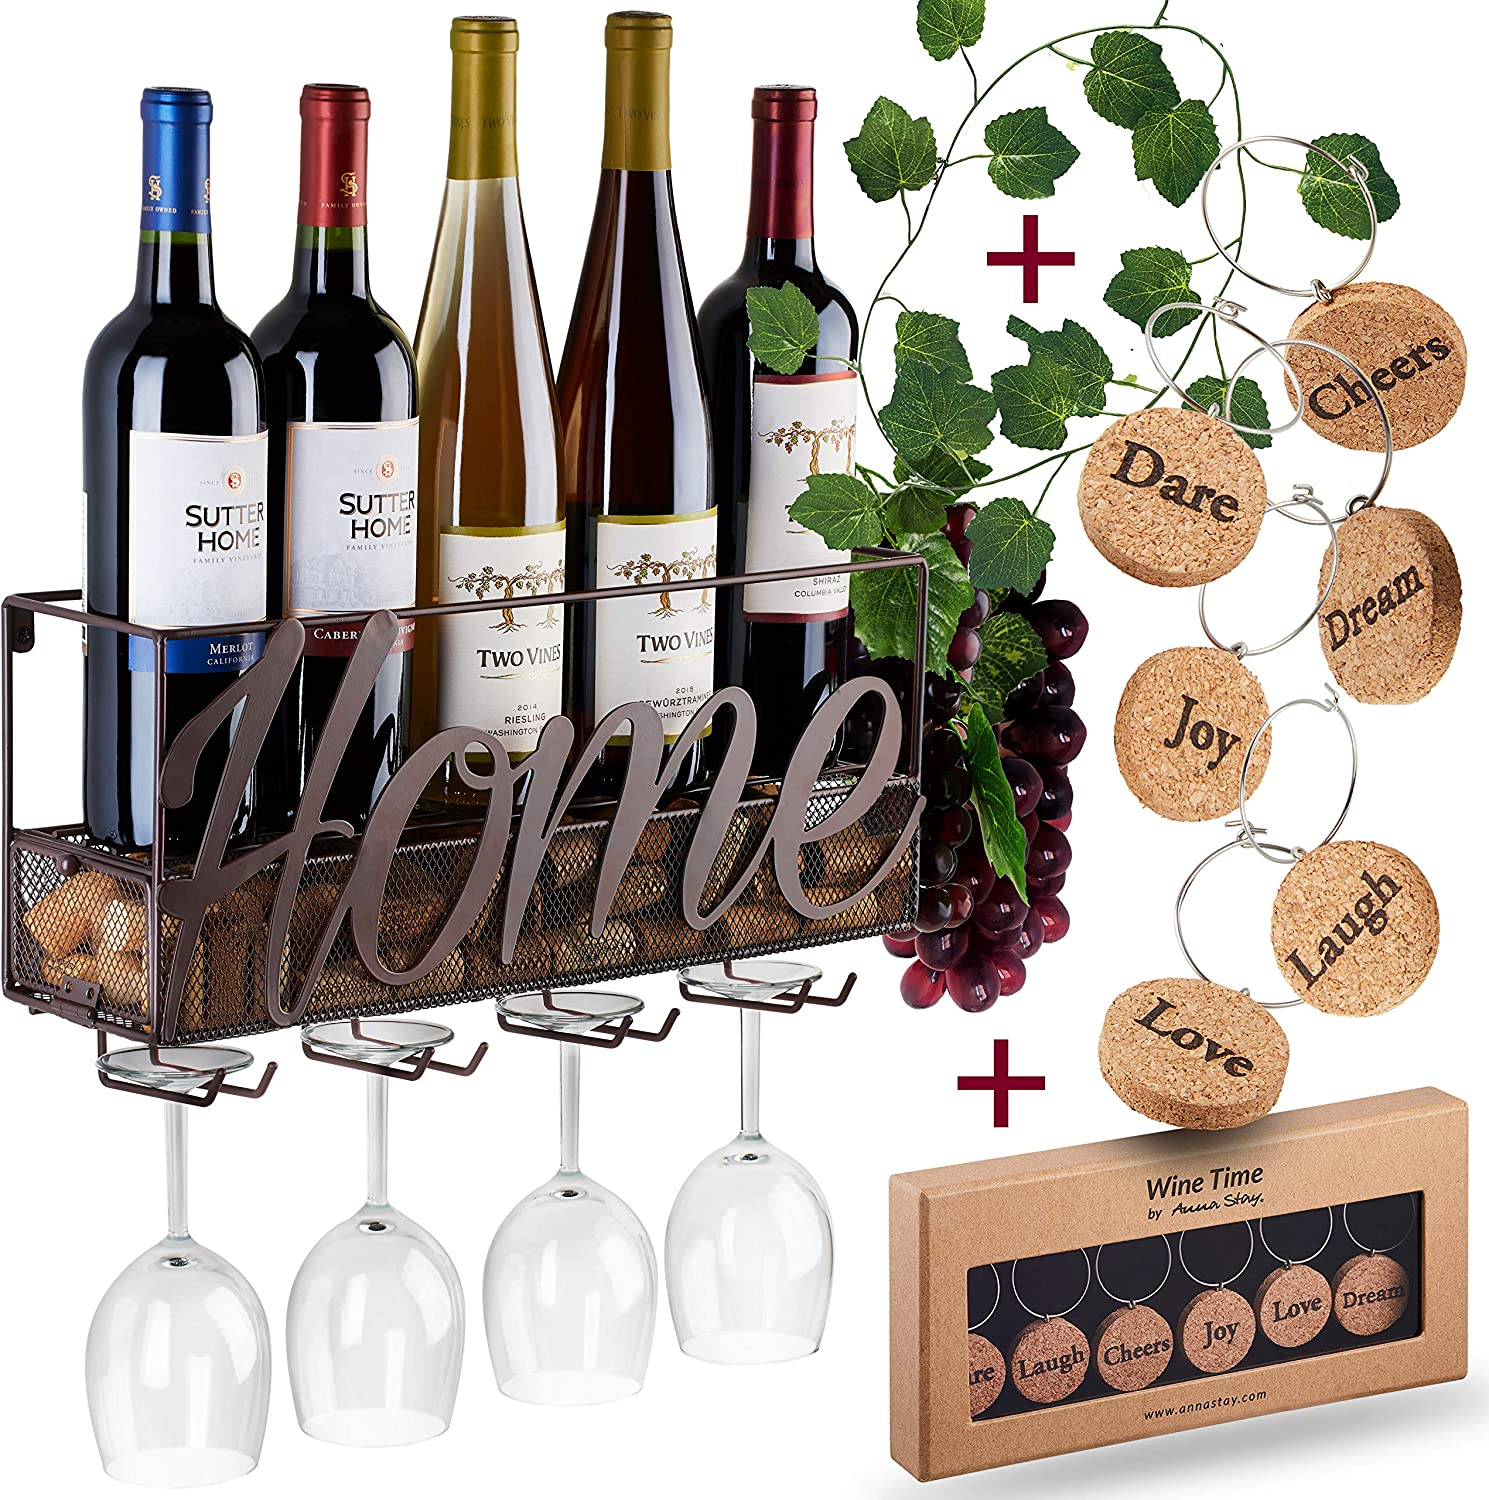 Wall mounted wine rack with bottle and glass holder.